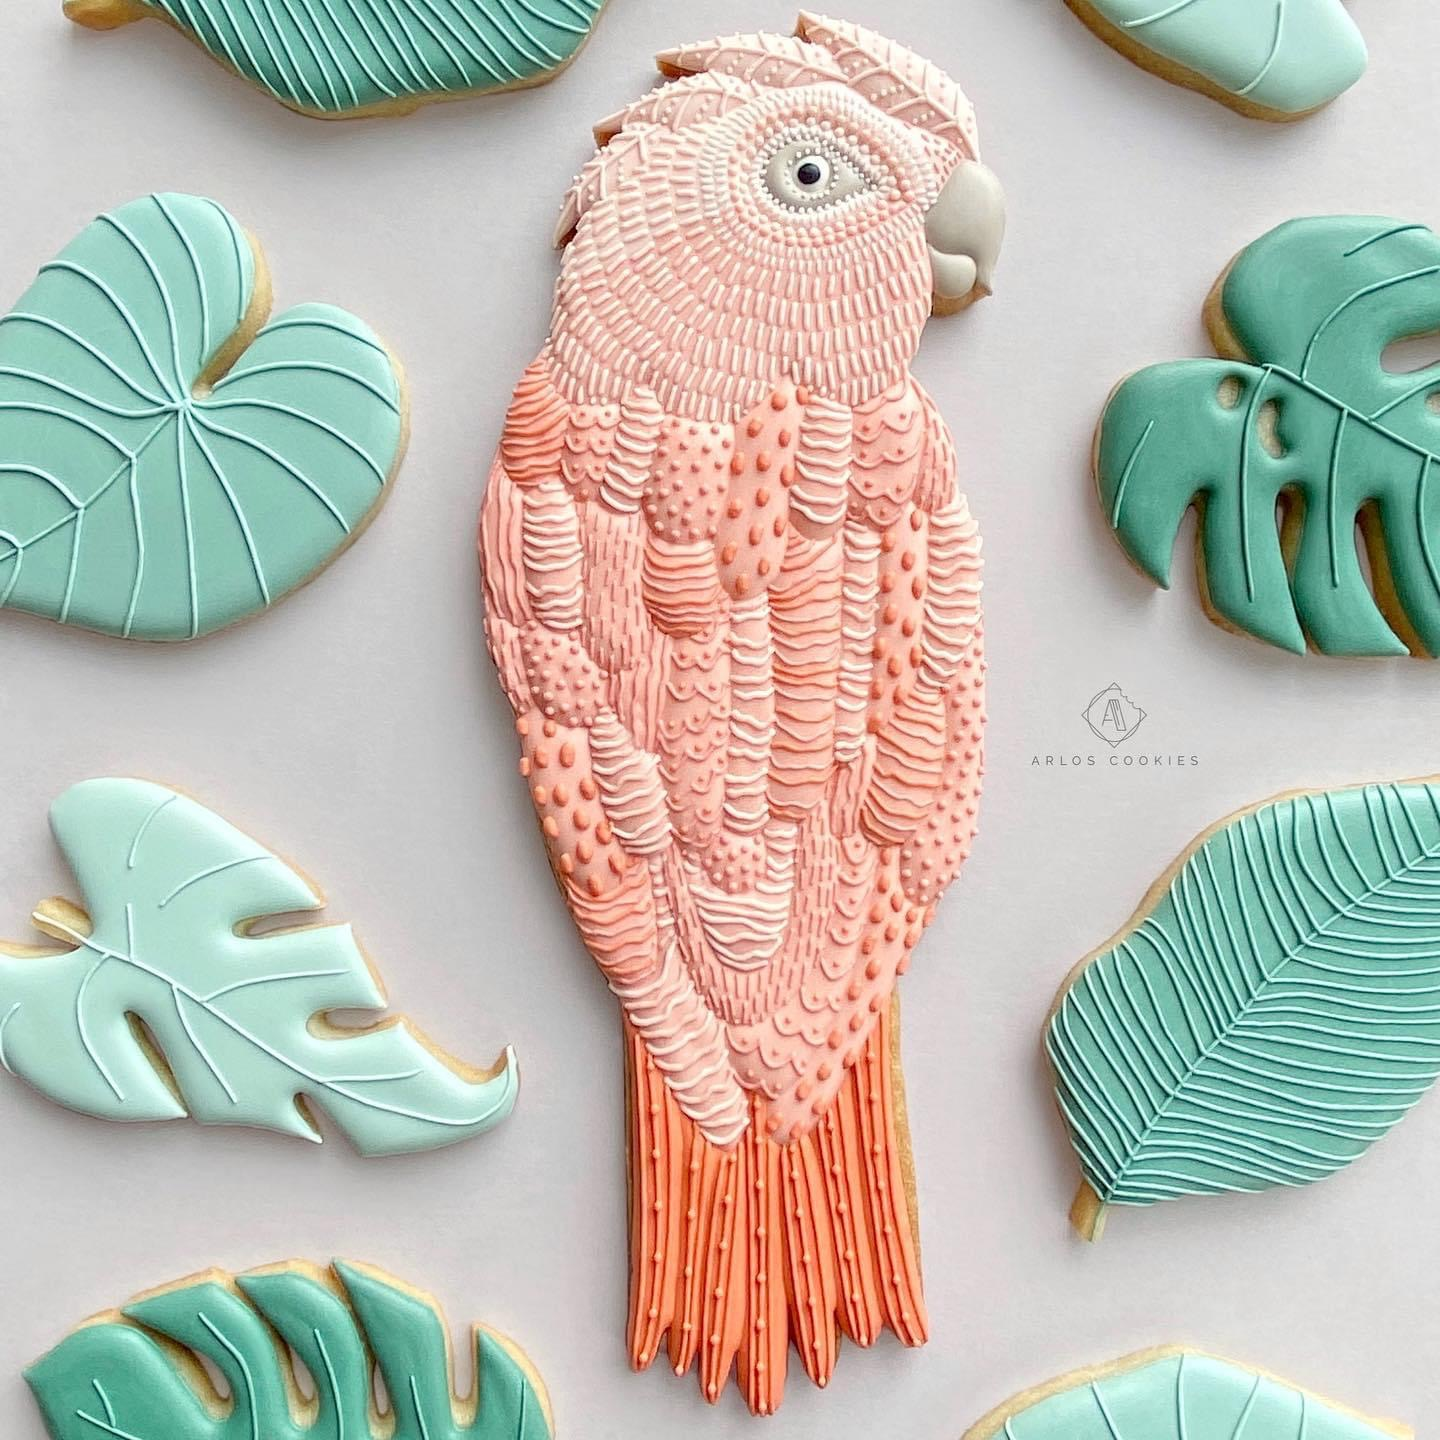 Decorated pink parrot cookie surrounded by green leaf cookies.